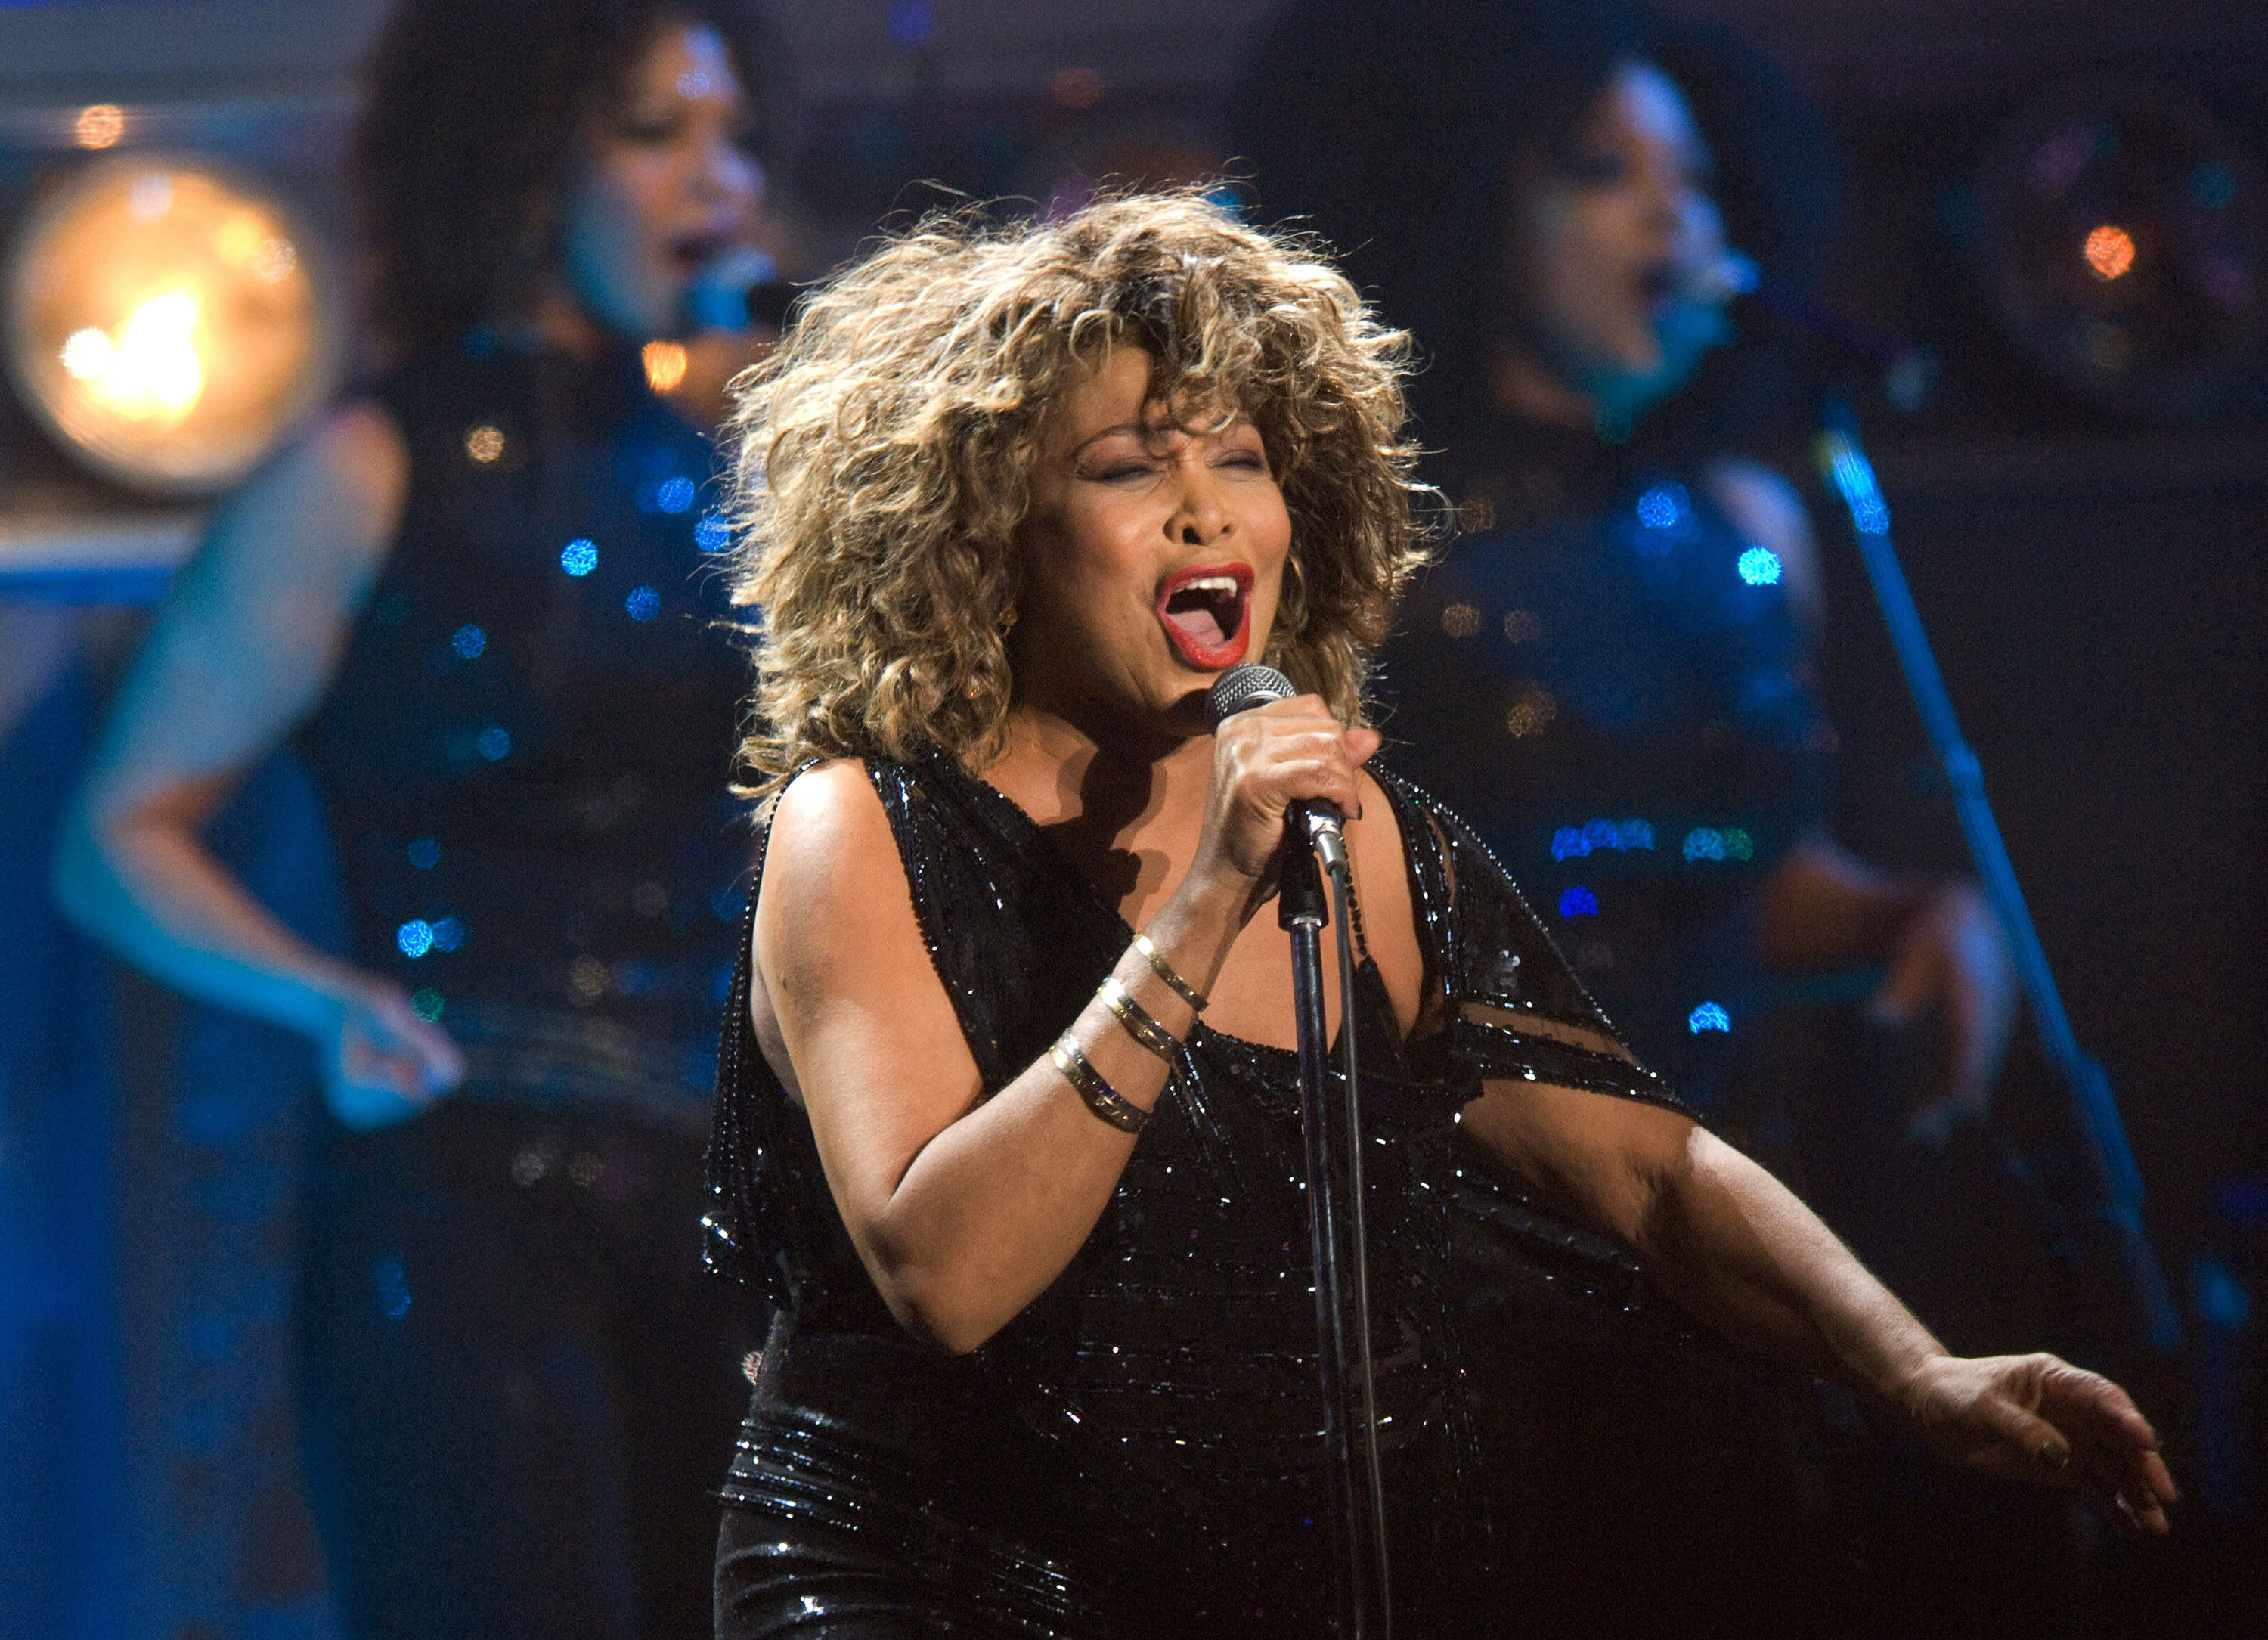 Tina Turner performing in the Netherlands in 2009 on final tour